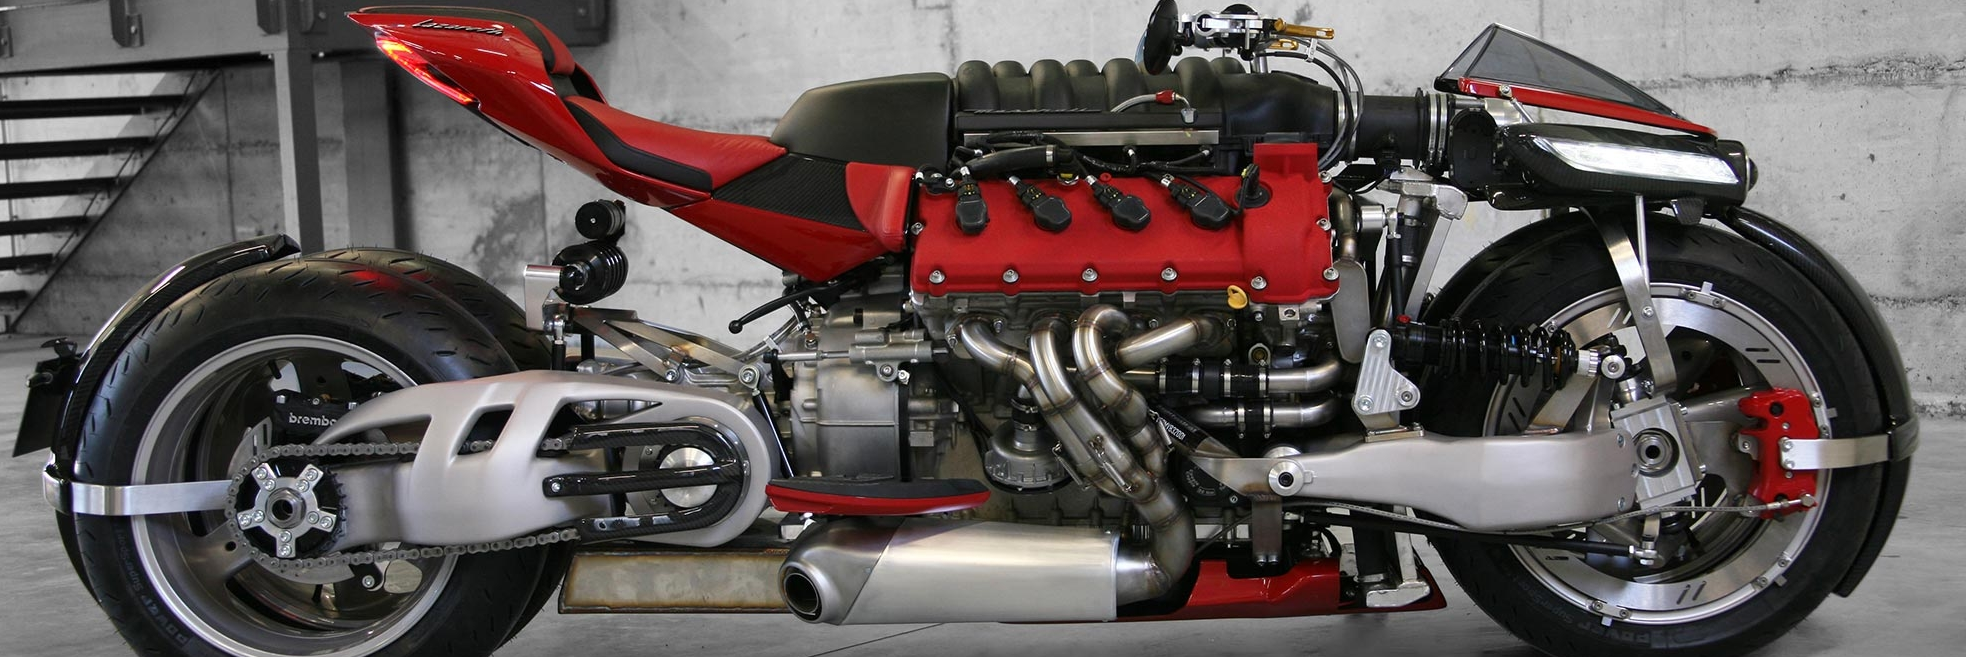 Not since the Dodge Tomahawk have we seen such a massive powerplant placed into a motorcycle configuration. This latest excursion into insanity was designed by Ludovic Lazareth who unveiled his superbike at the 2016 Geneva Auto Show. Since then, the Maserati powered motor cycle has been keeping a low profile until video recently surfaced of the 4.7-liter V8 superbike in action.